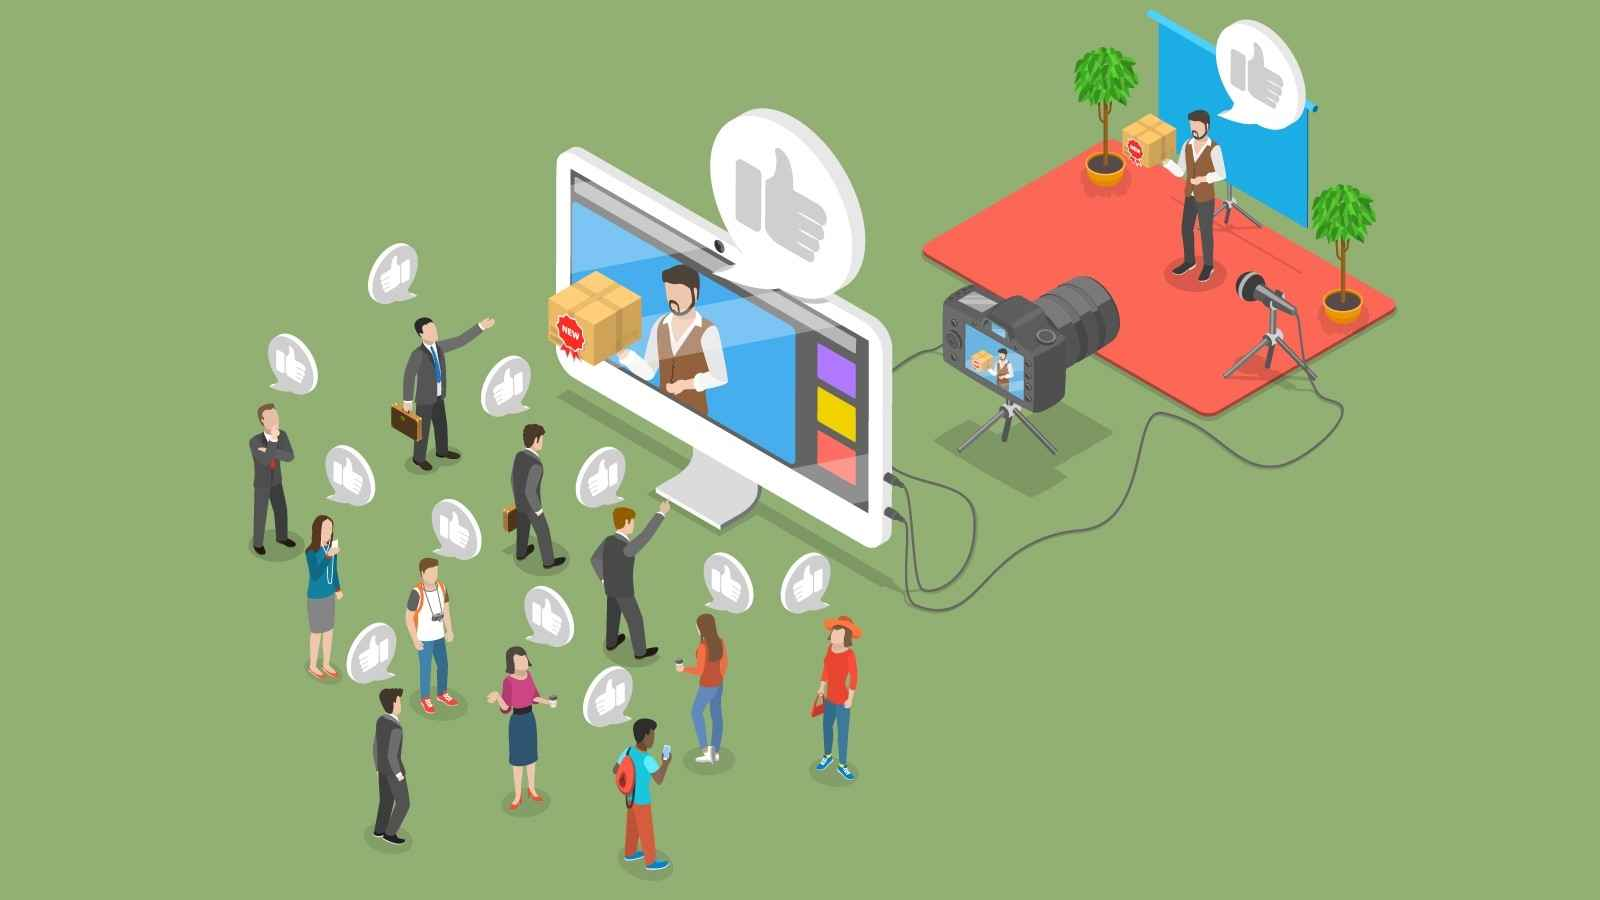 Attracting new customers in an article about commercial video